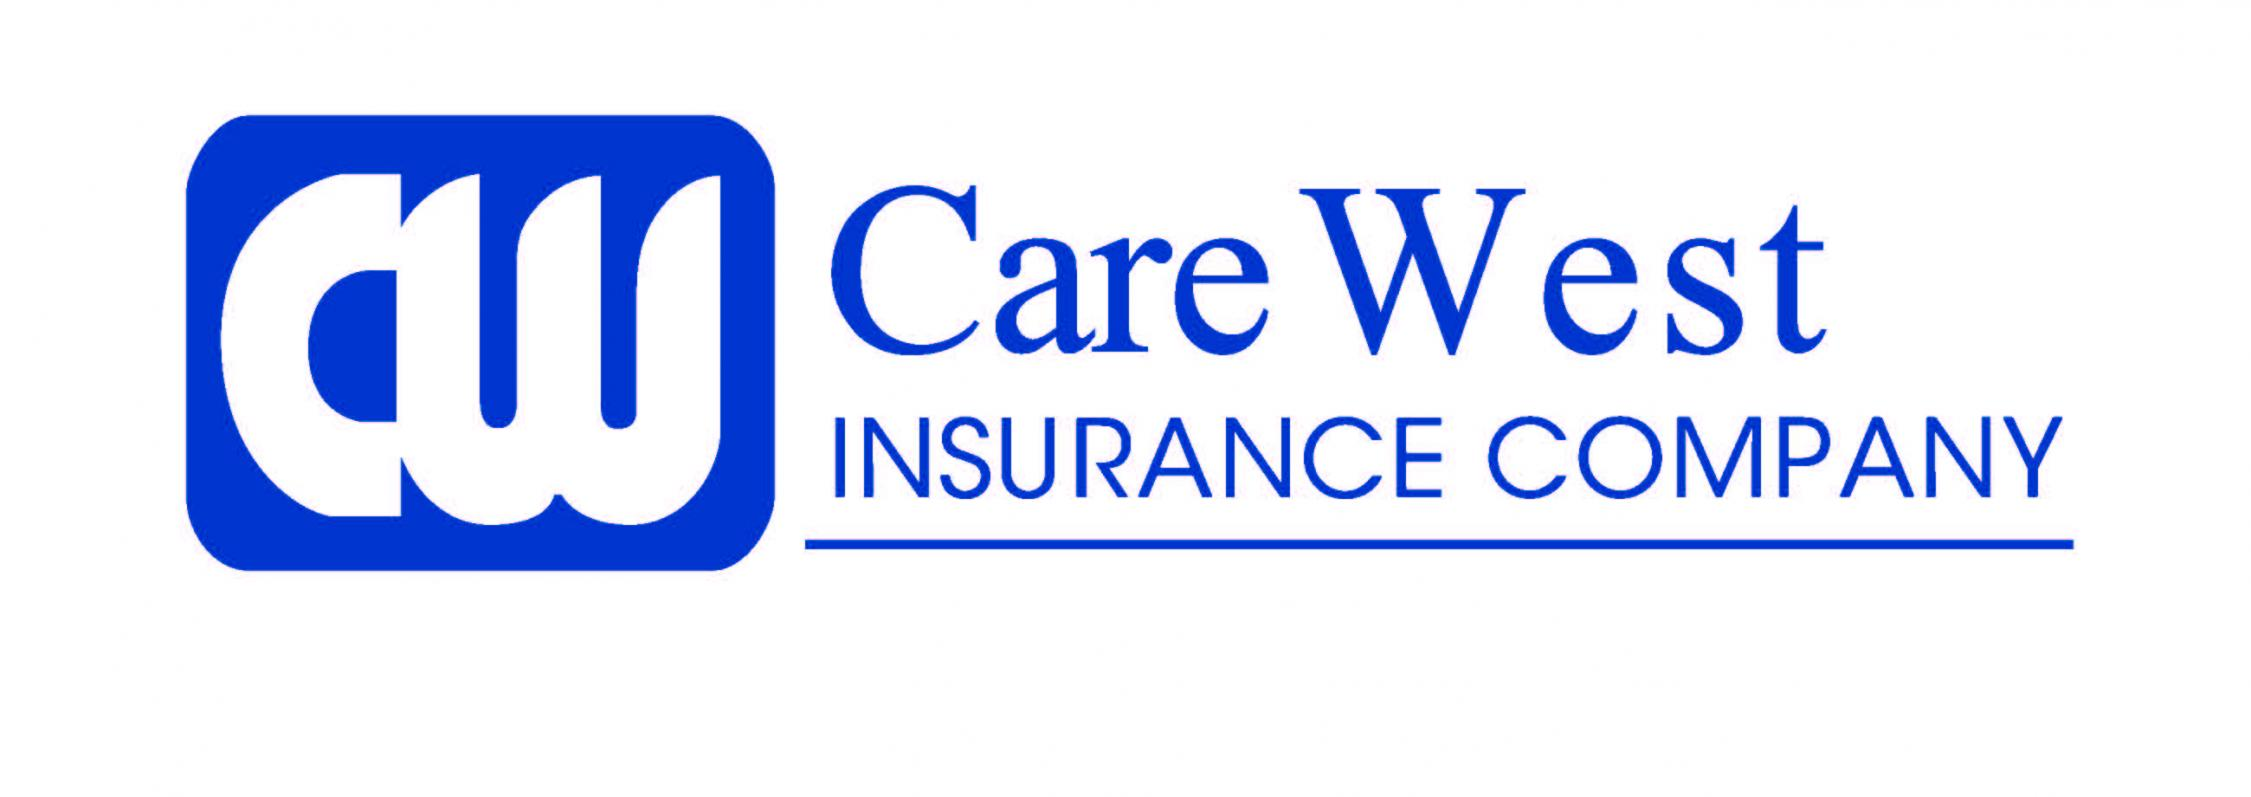 carewestinsurance Logo